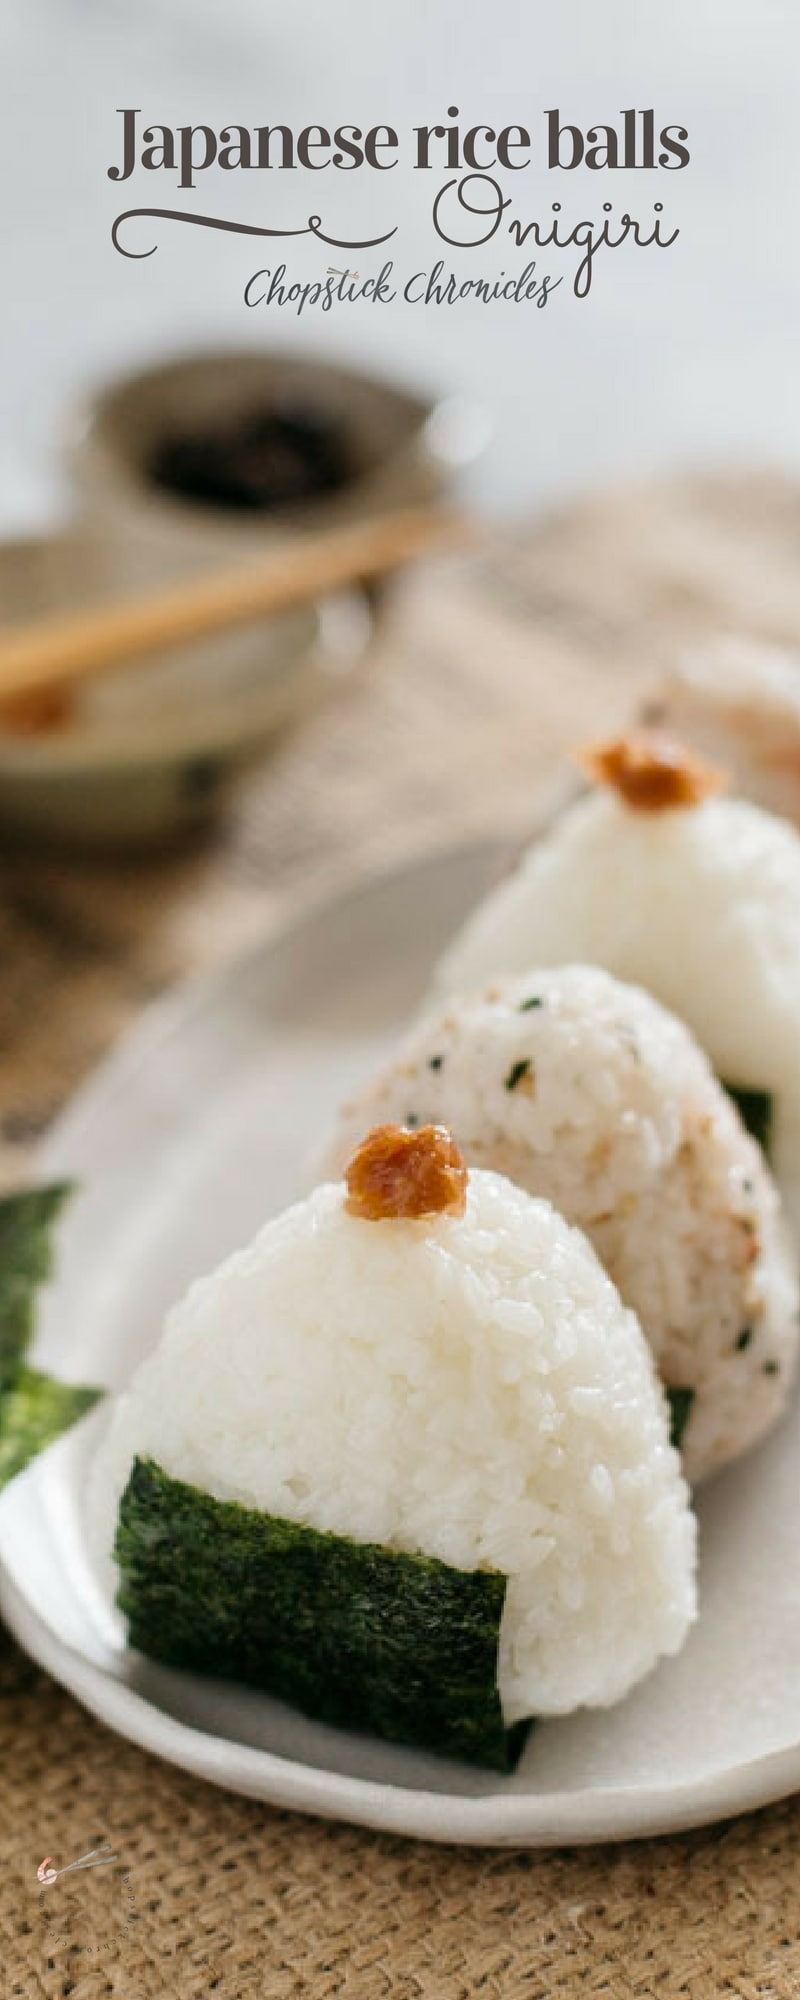 Japanese Rice Balls (Onigiri) | Chopstick Chronicles